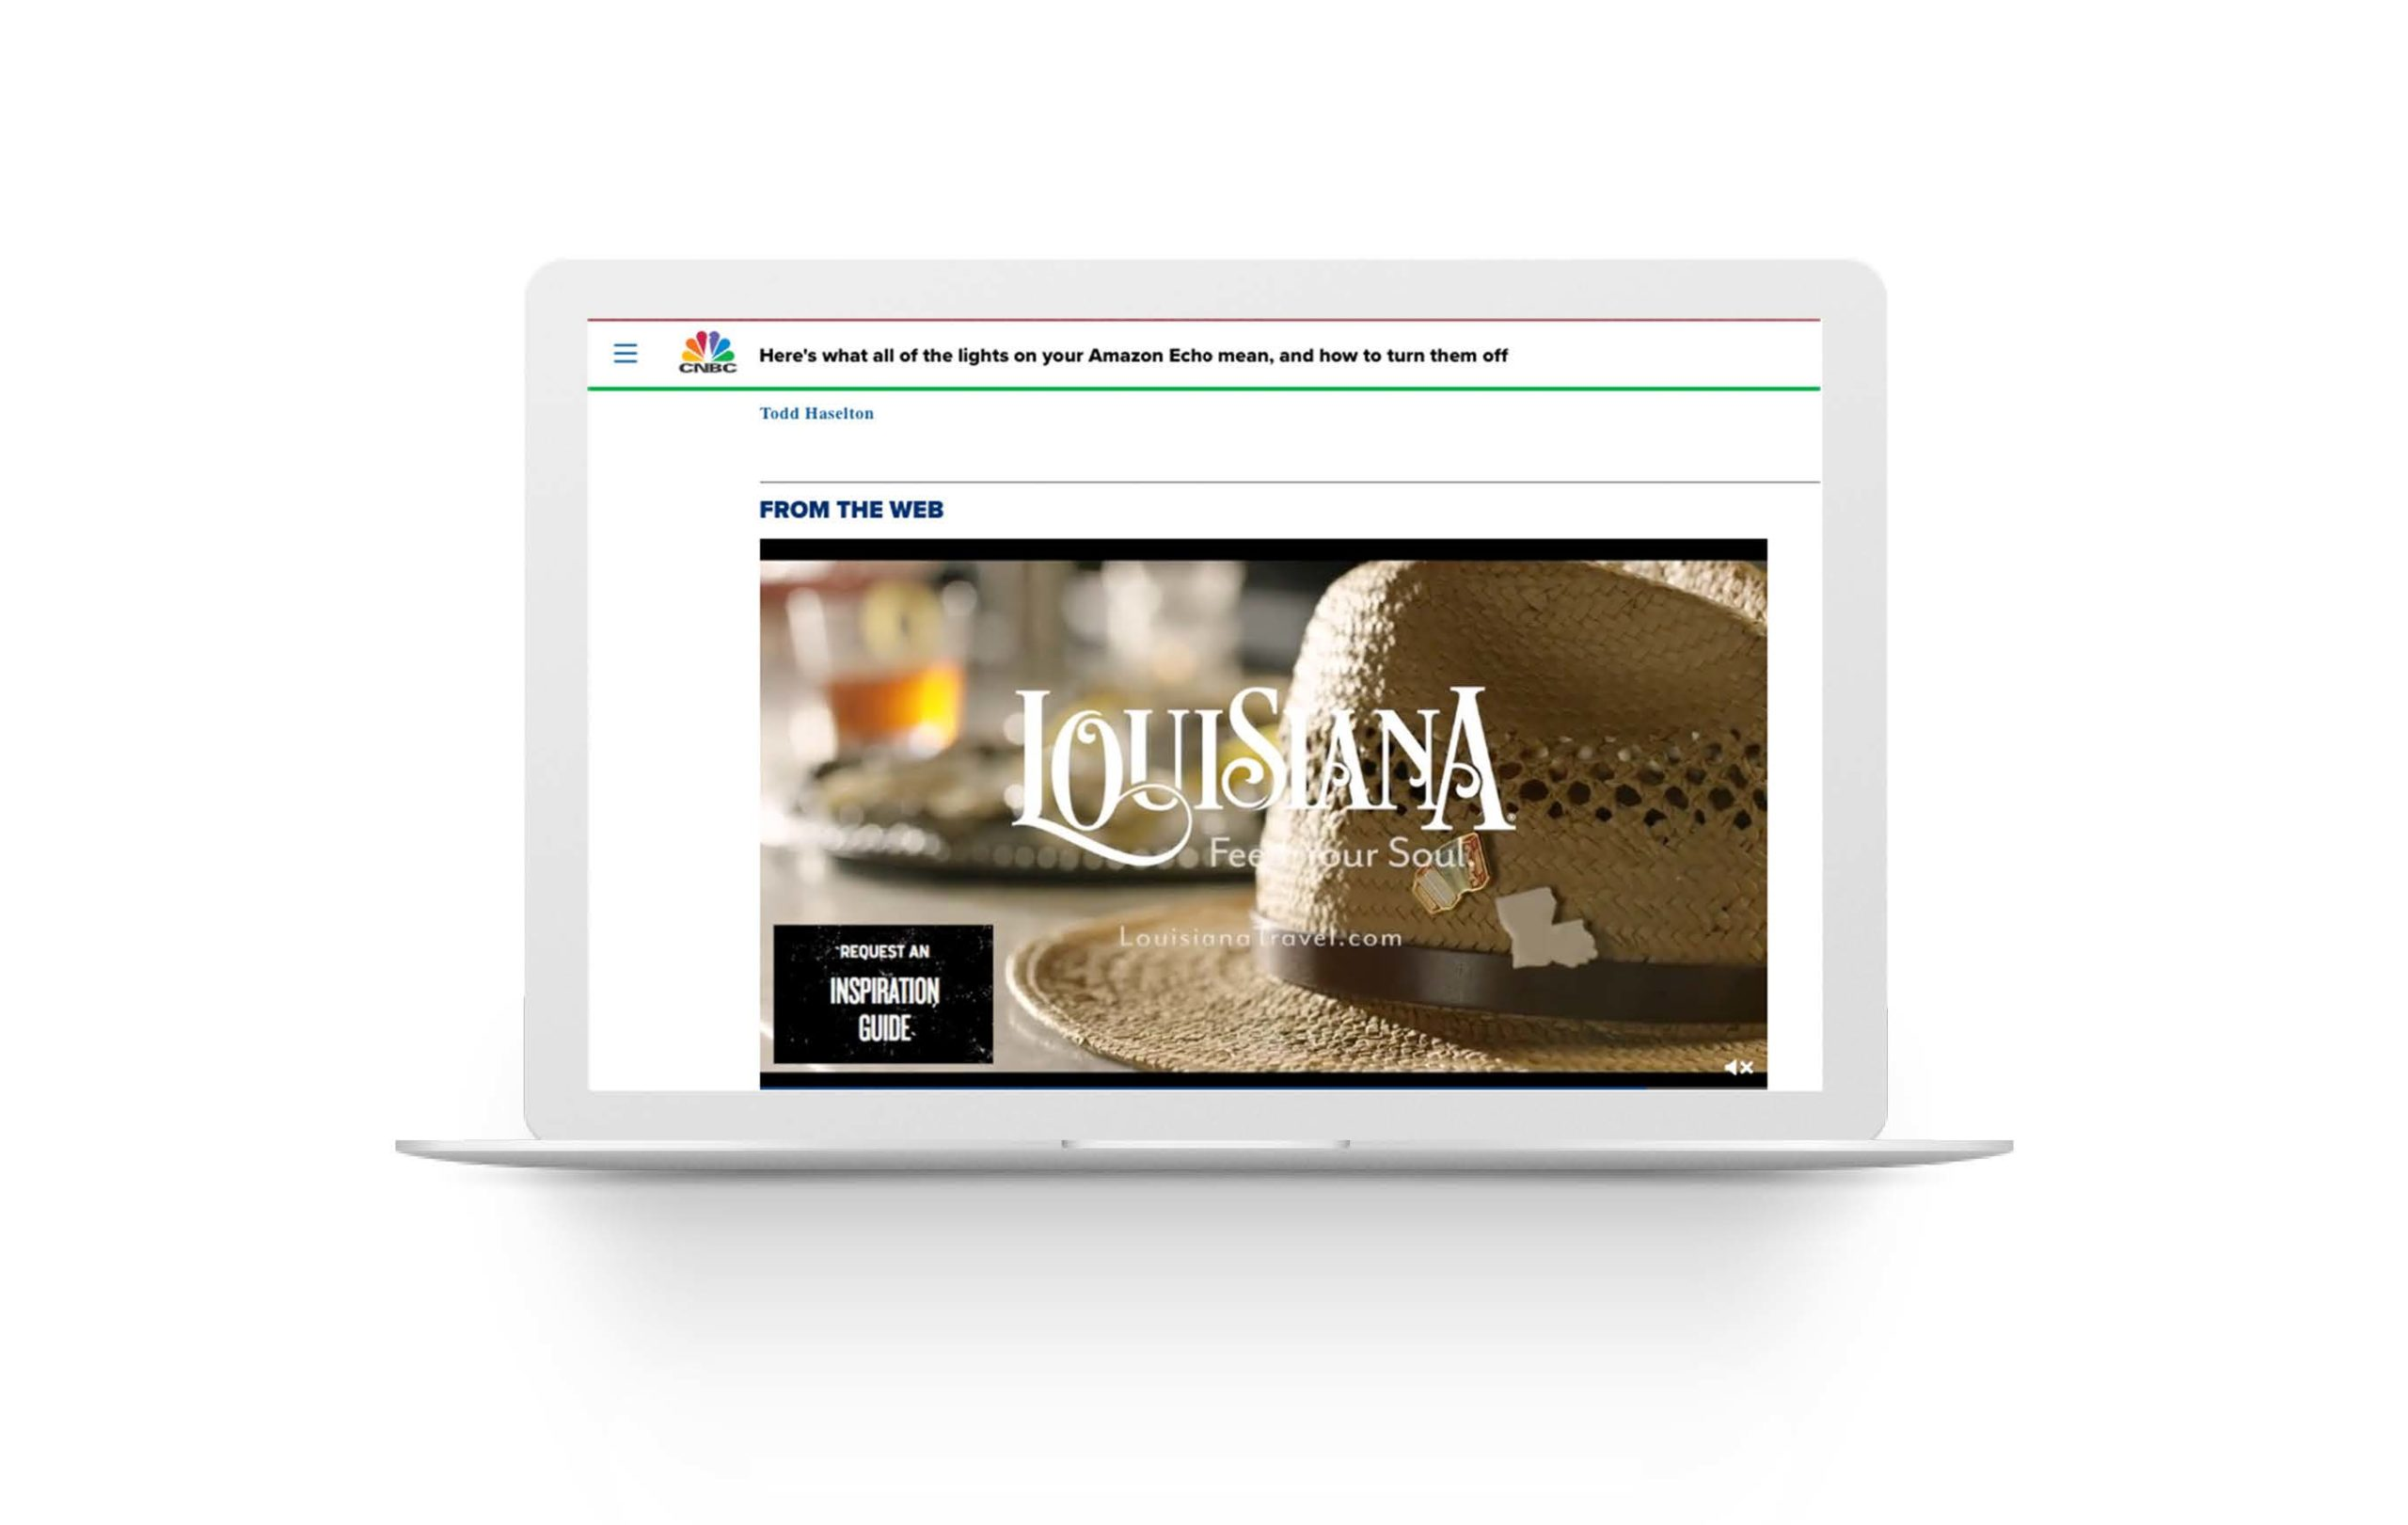 Morgan & Co. used a variety of media channels for their Tourism client's video campaign, including channels like OTT, display, pre-roll and local television channels, alongside Taboola.